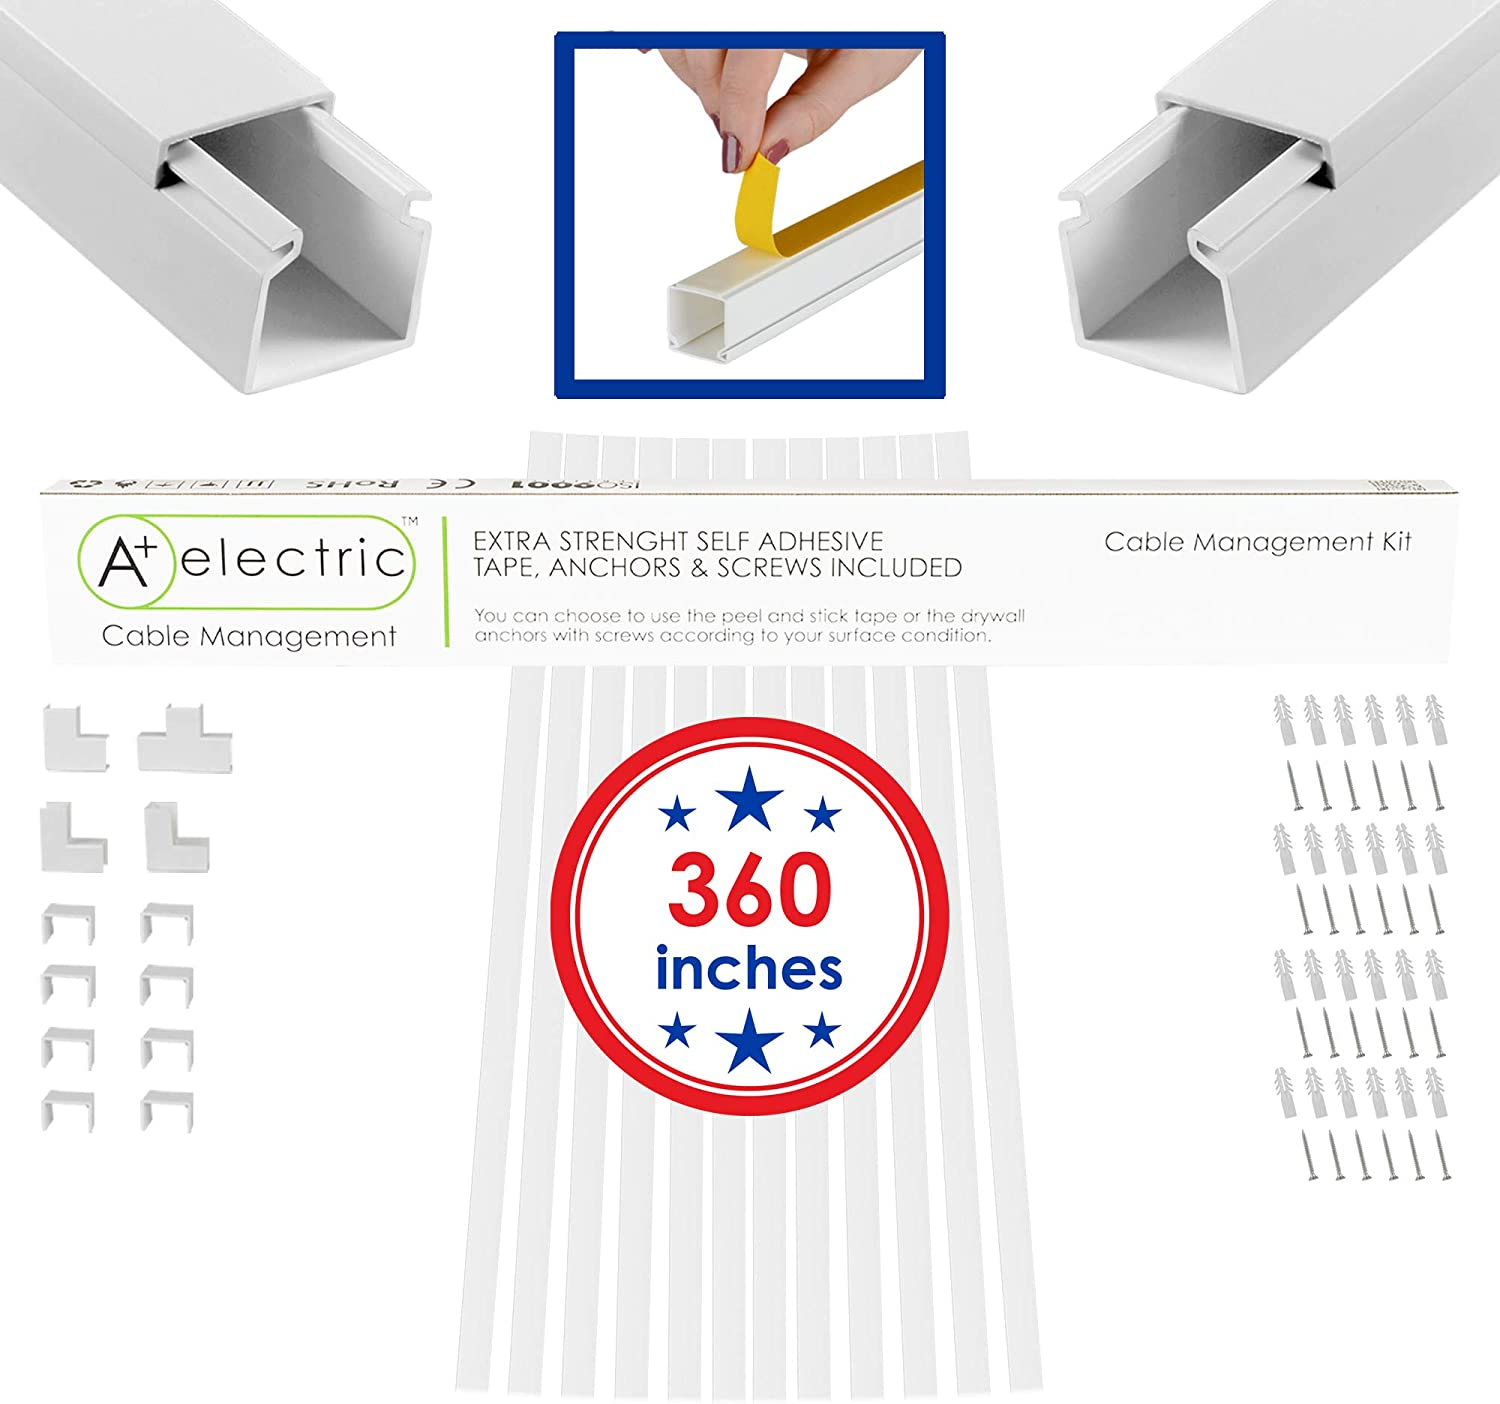 """A+ Electric Medium Cord Cover 360 in for Max 6 Cables Cable Raceway Cable Concealer Cord Management Kit Wire Cord Hider Cable Organizer On Wall White and Self Adhesive Channel 0.98""""0.98""""x360"""""""